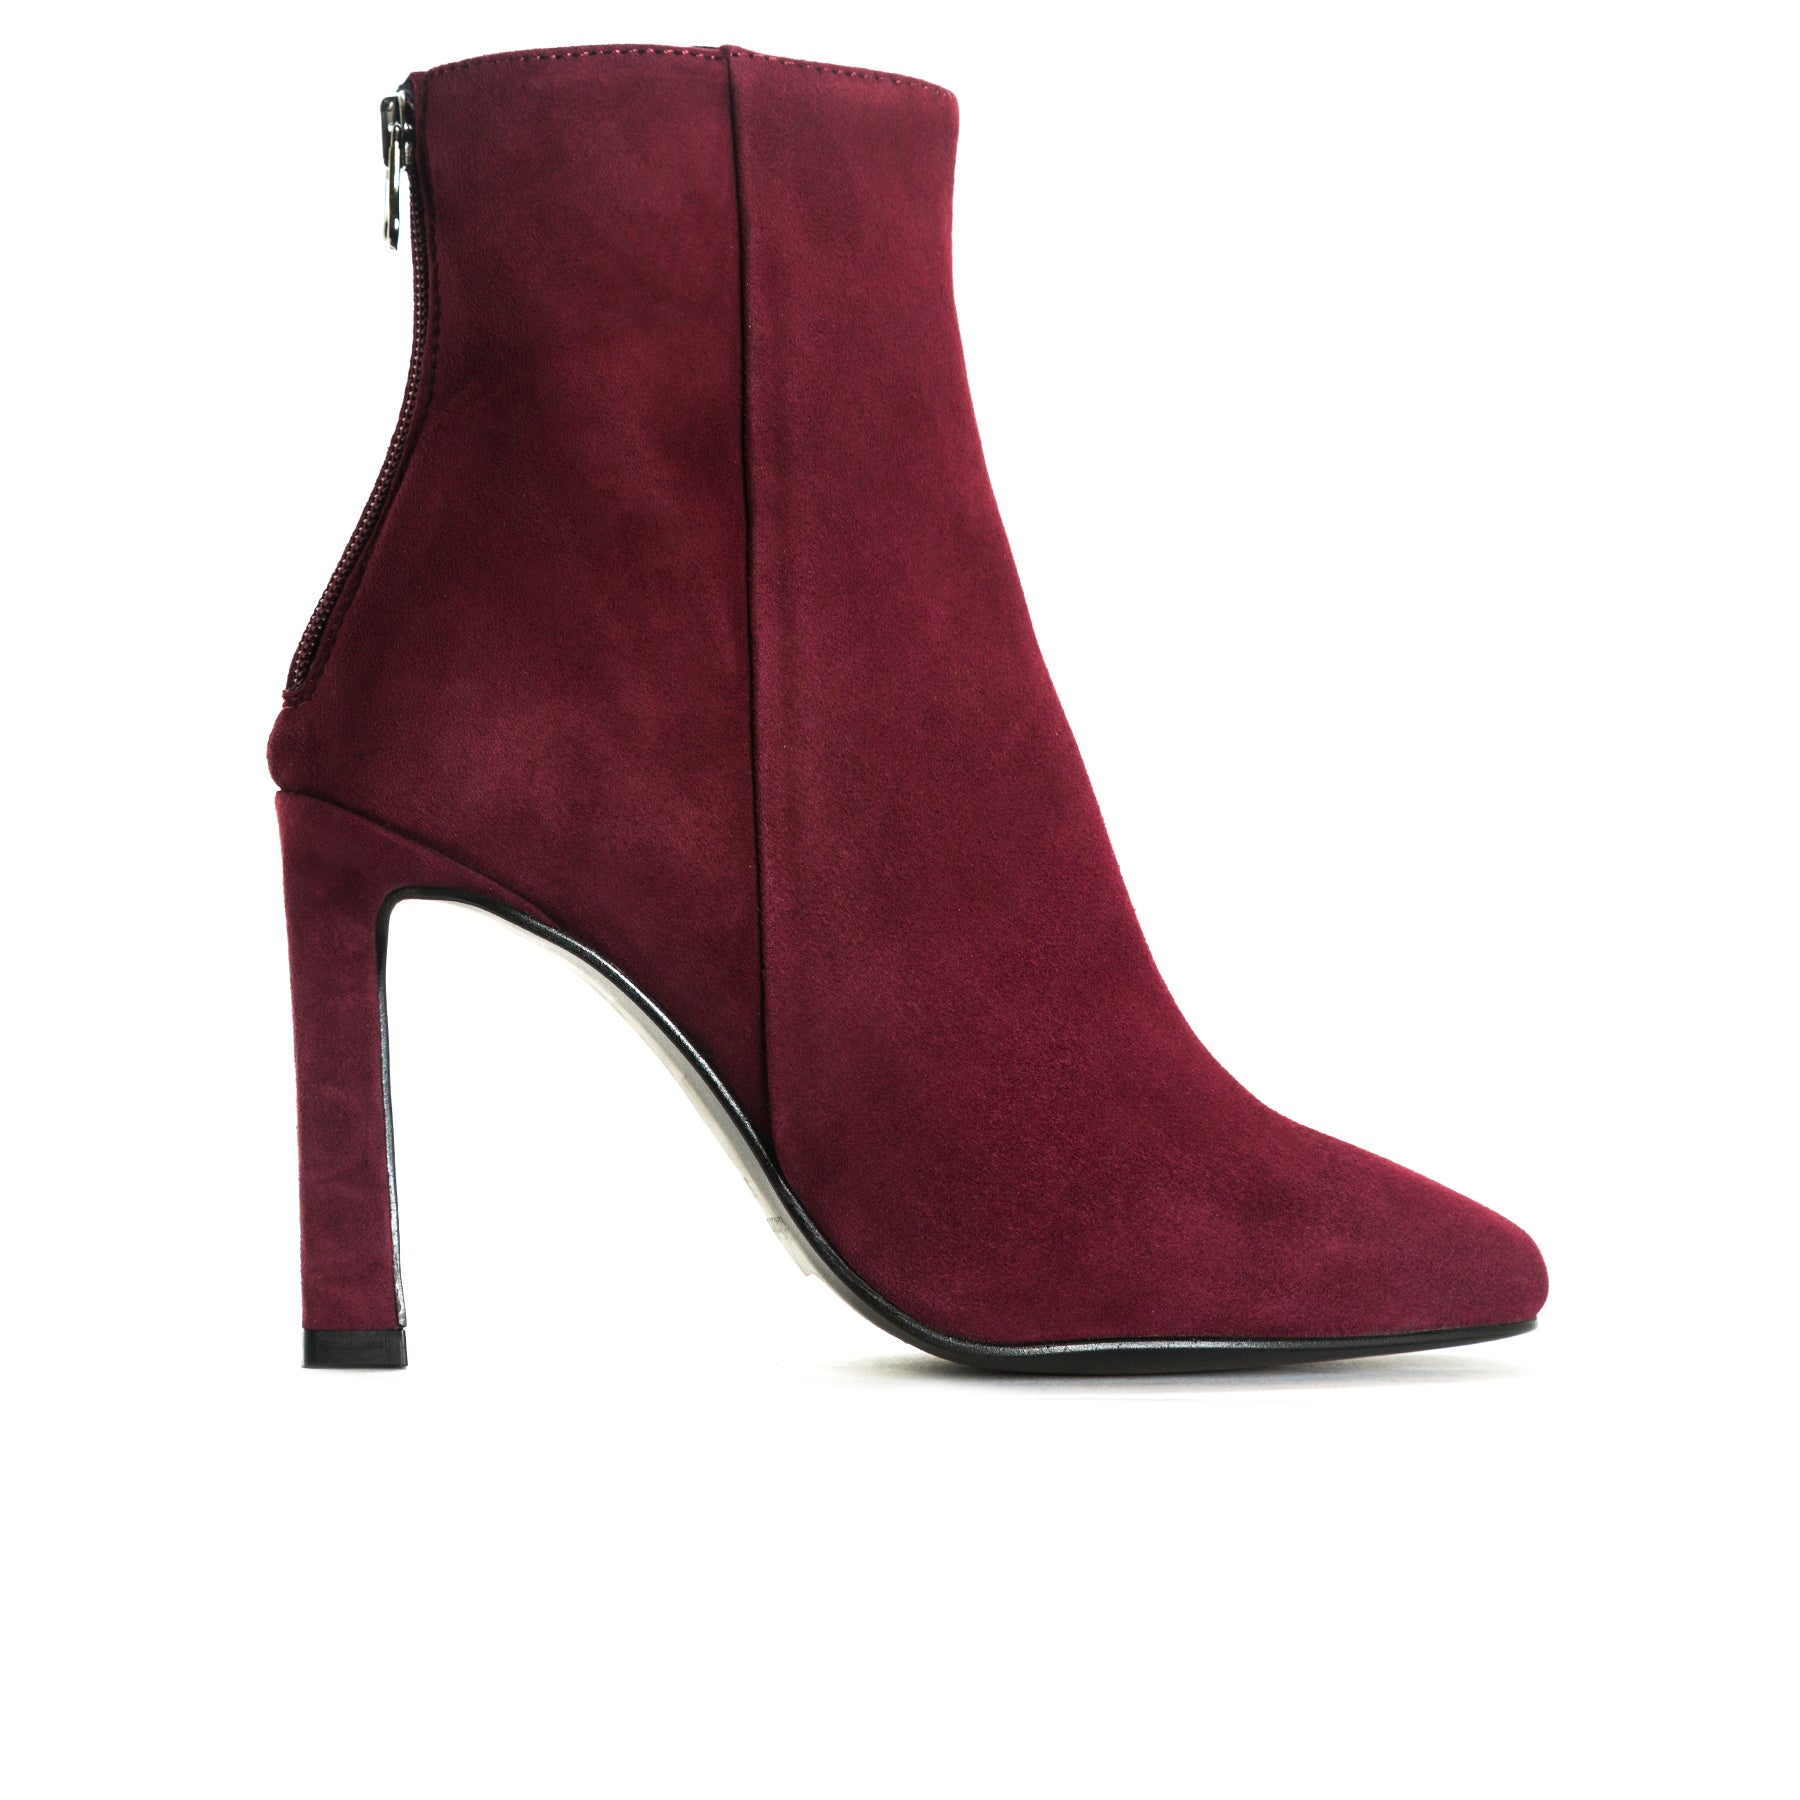 Lavrio Bordo Suede Booties